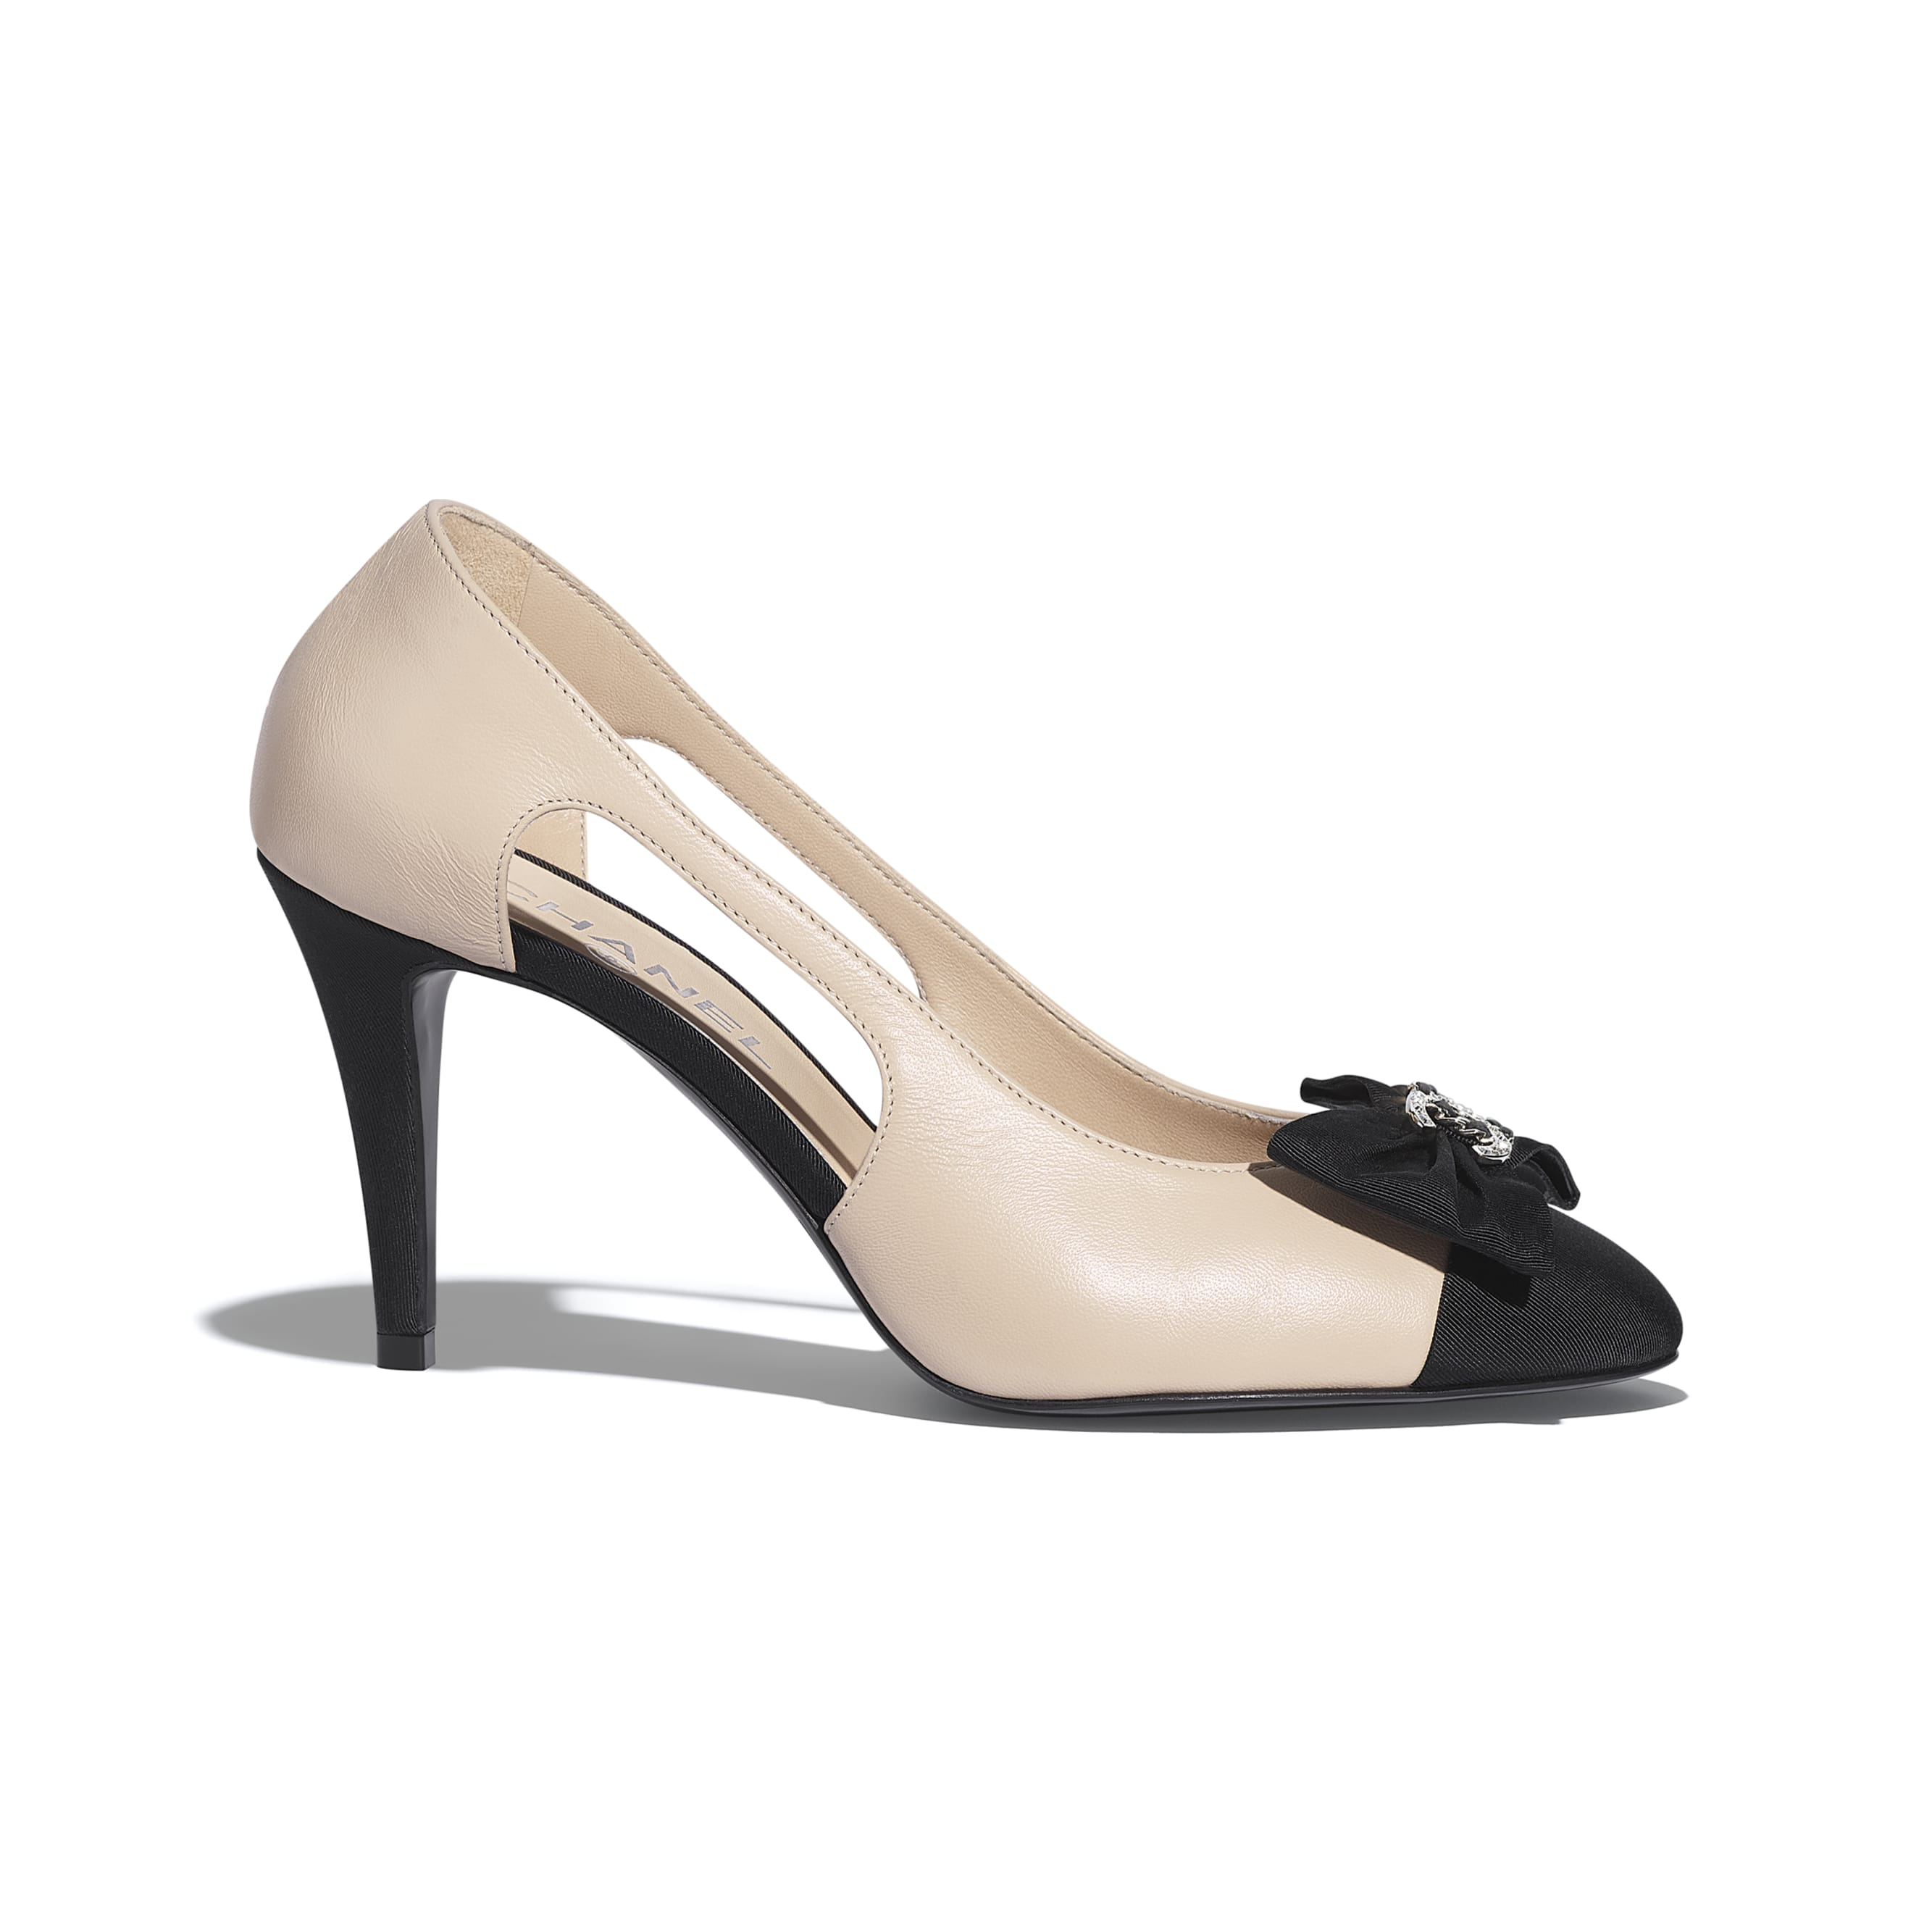 Pumps - Beige & Black - Lambskin & Grosgrain - CHANEL - Default view - see standard sized version